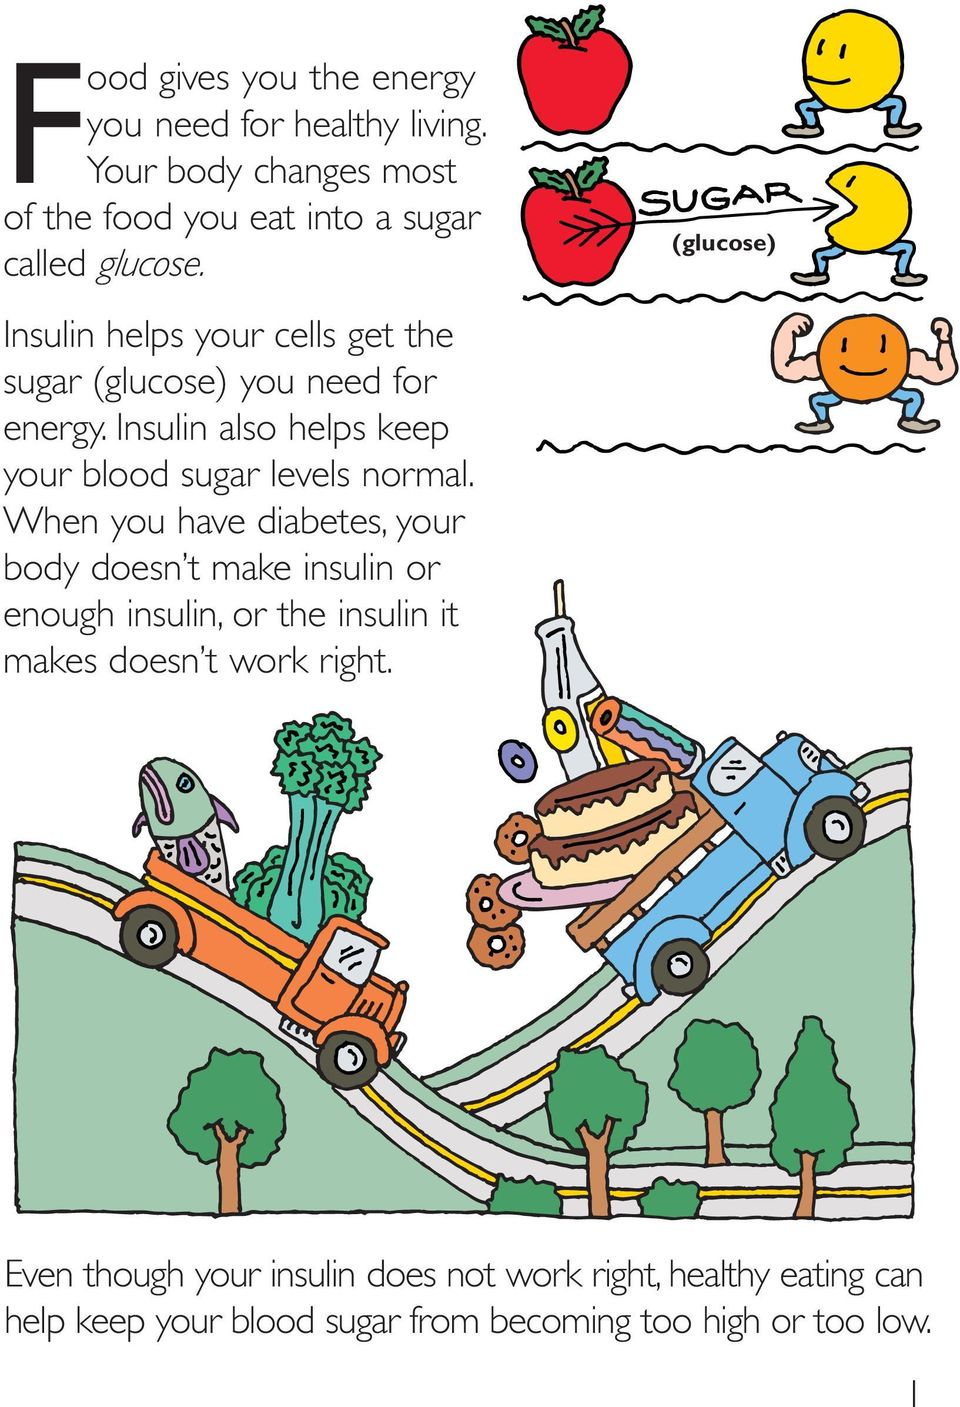 Insulin also helps keep your blood sugar levels normal.